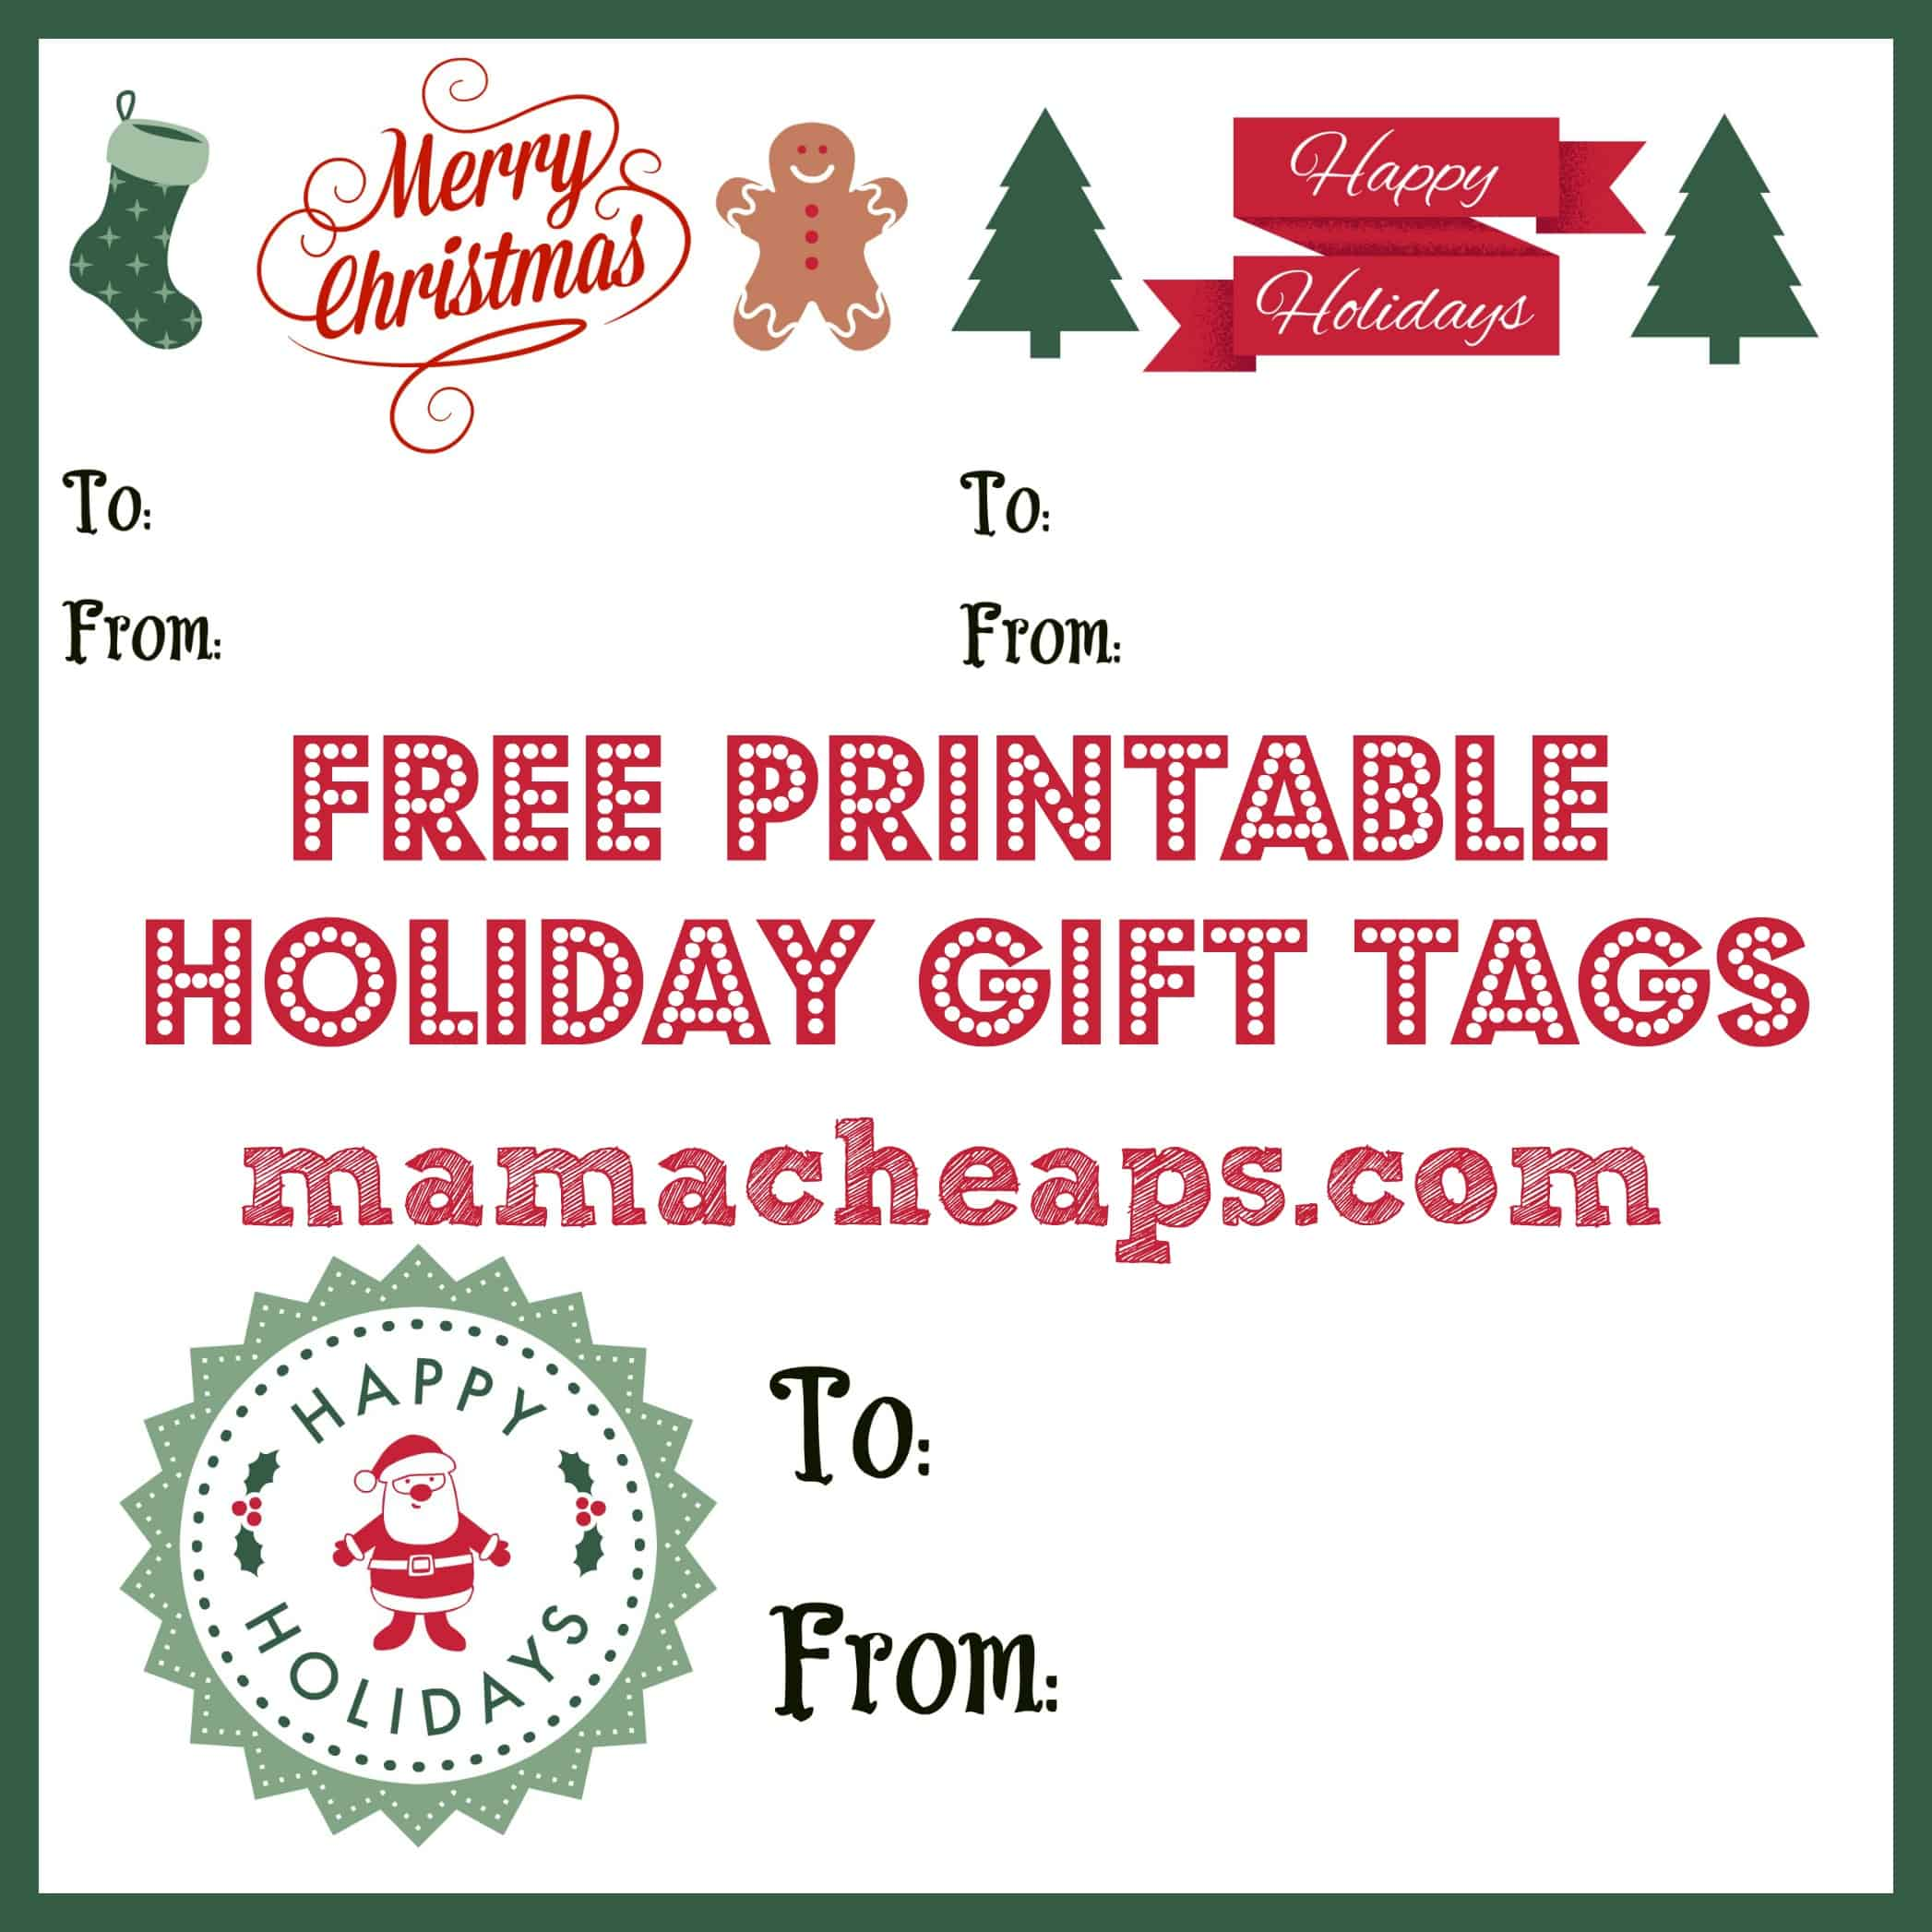 graphic about Printable Holiday Tags called Free of charge Printable Family vacation Reward Tags - Outstanding for Publications, Etcetera